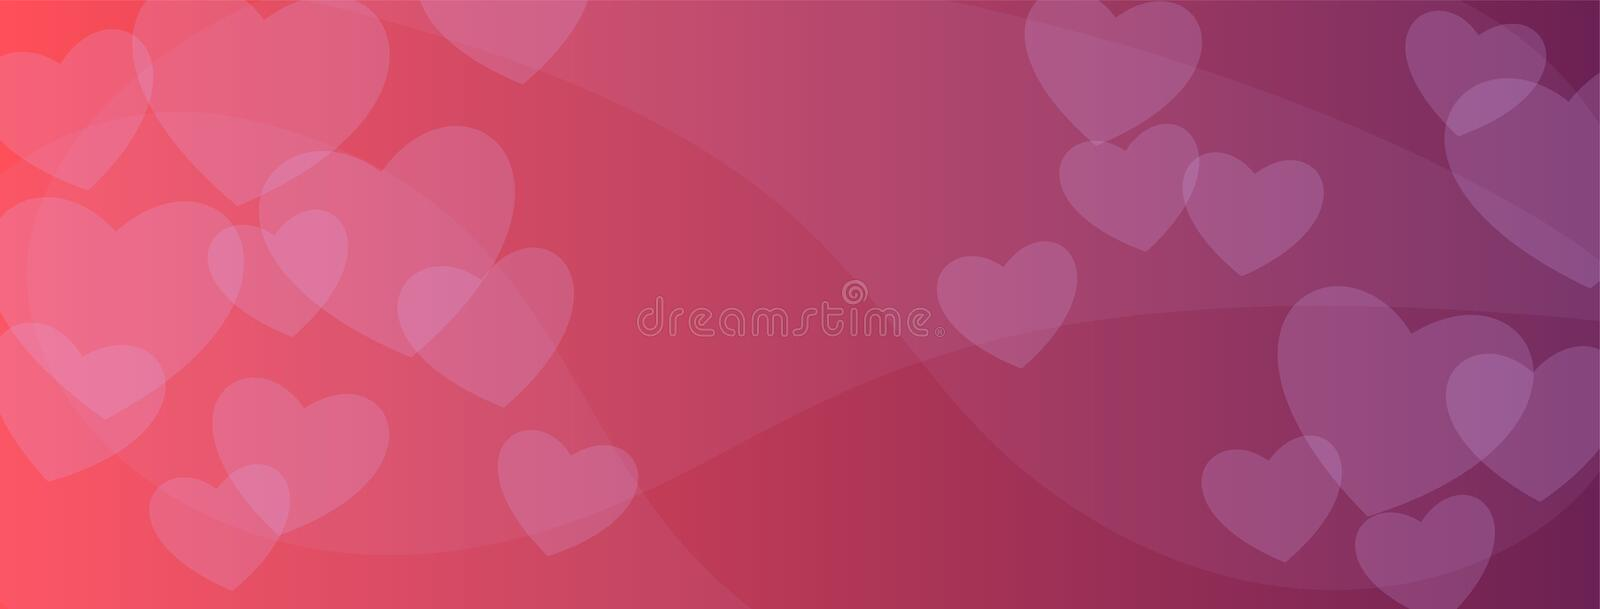 Valentines abstract red background for social media promotion. Love, wedding banner, poster template. February 14th day. Layout design. Pink romantic wallpaper vector illustration